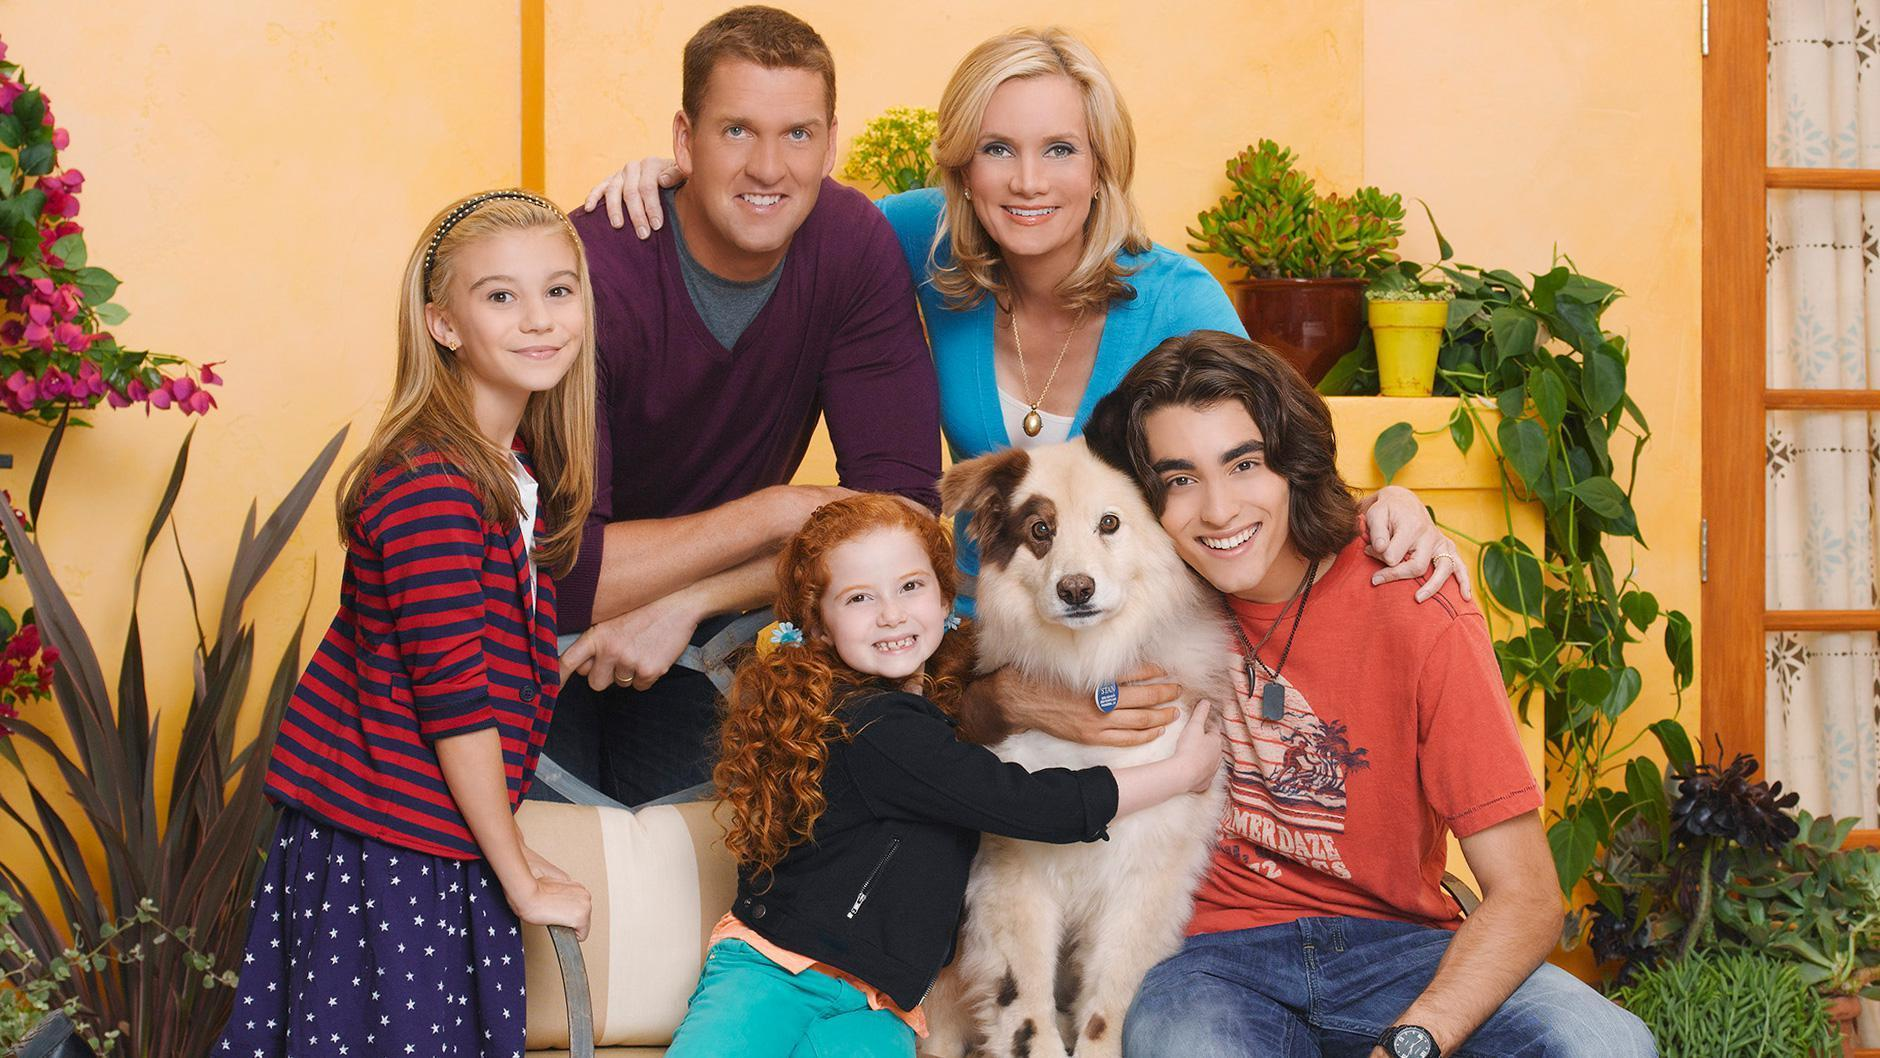 What is the name of the show that these people and dog are from?